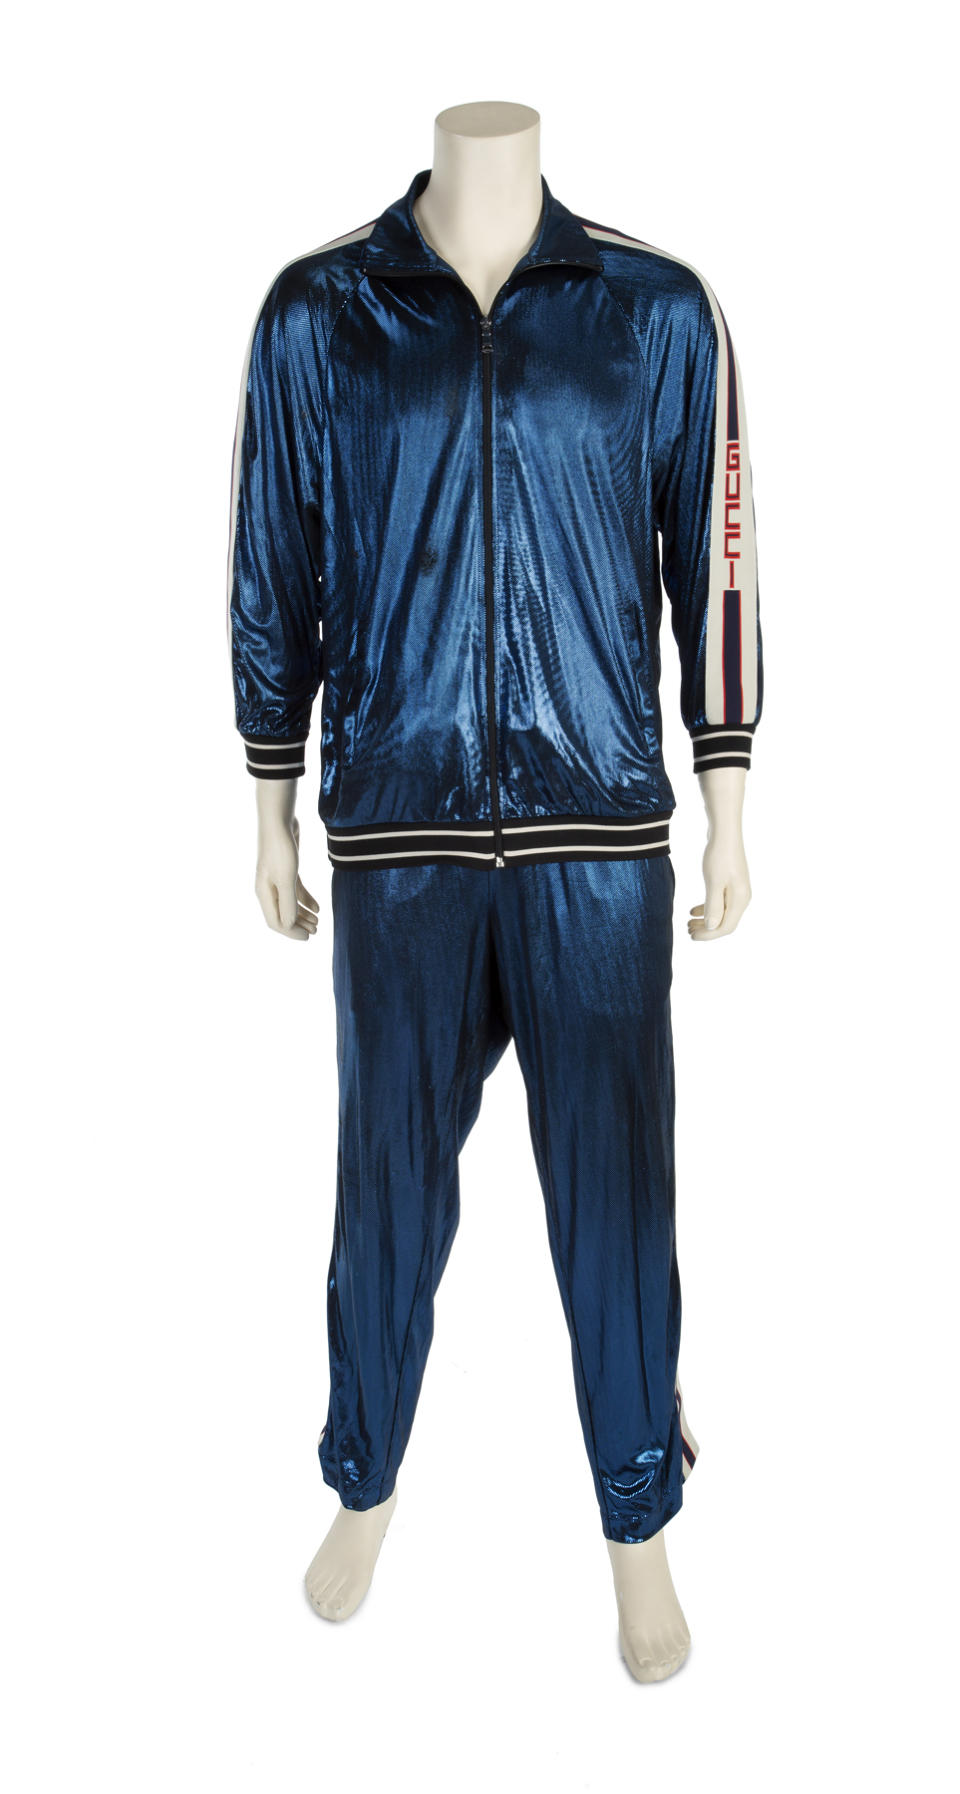 A Gucci tracksuit once belonging to Sir Elton John is going under the hammer (Julien's Auctions/PA)